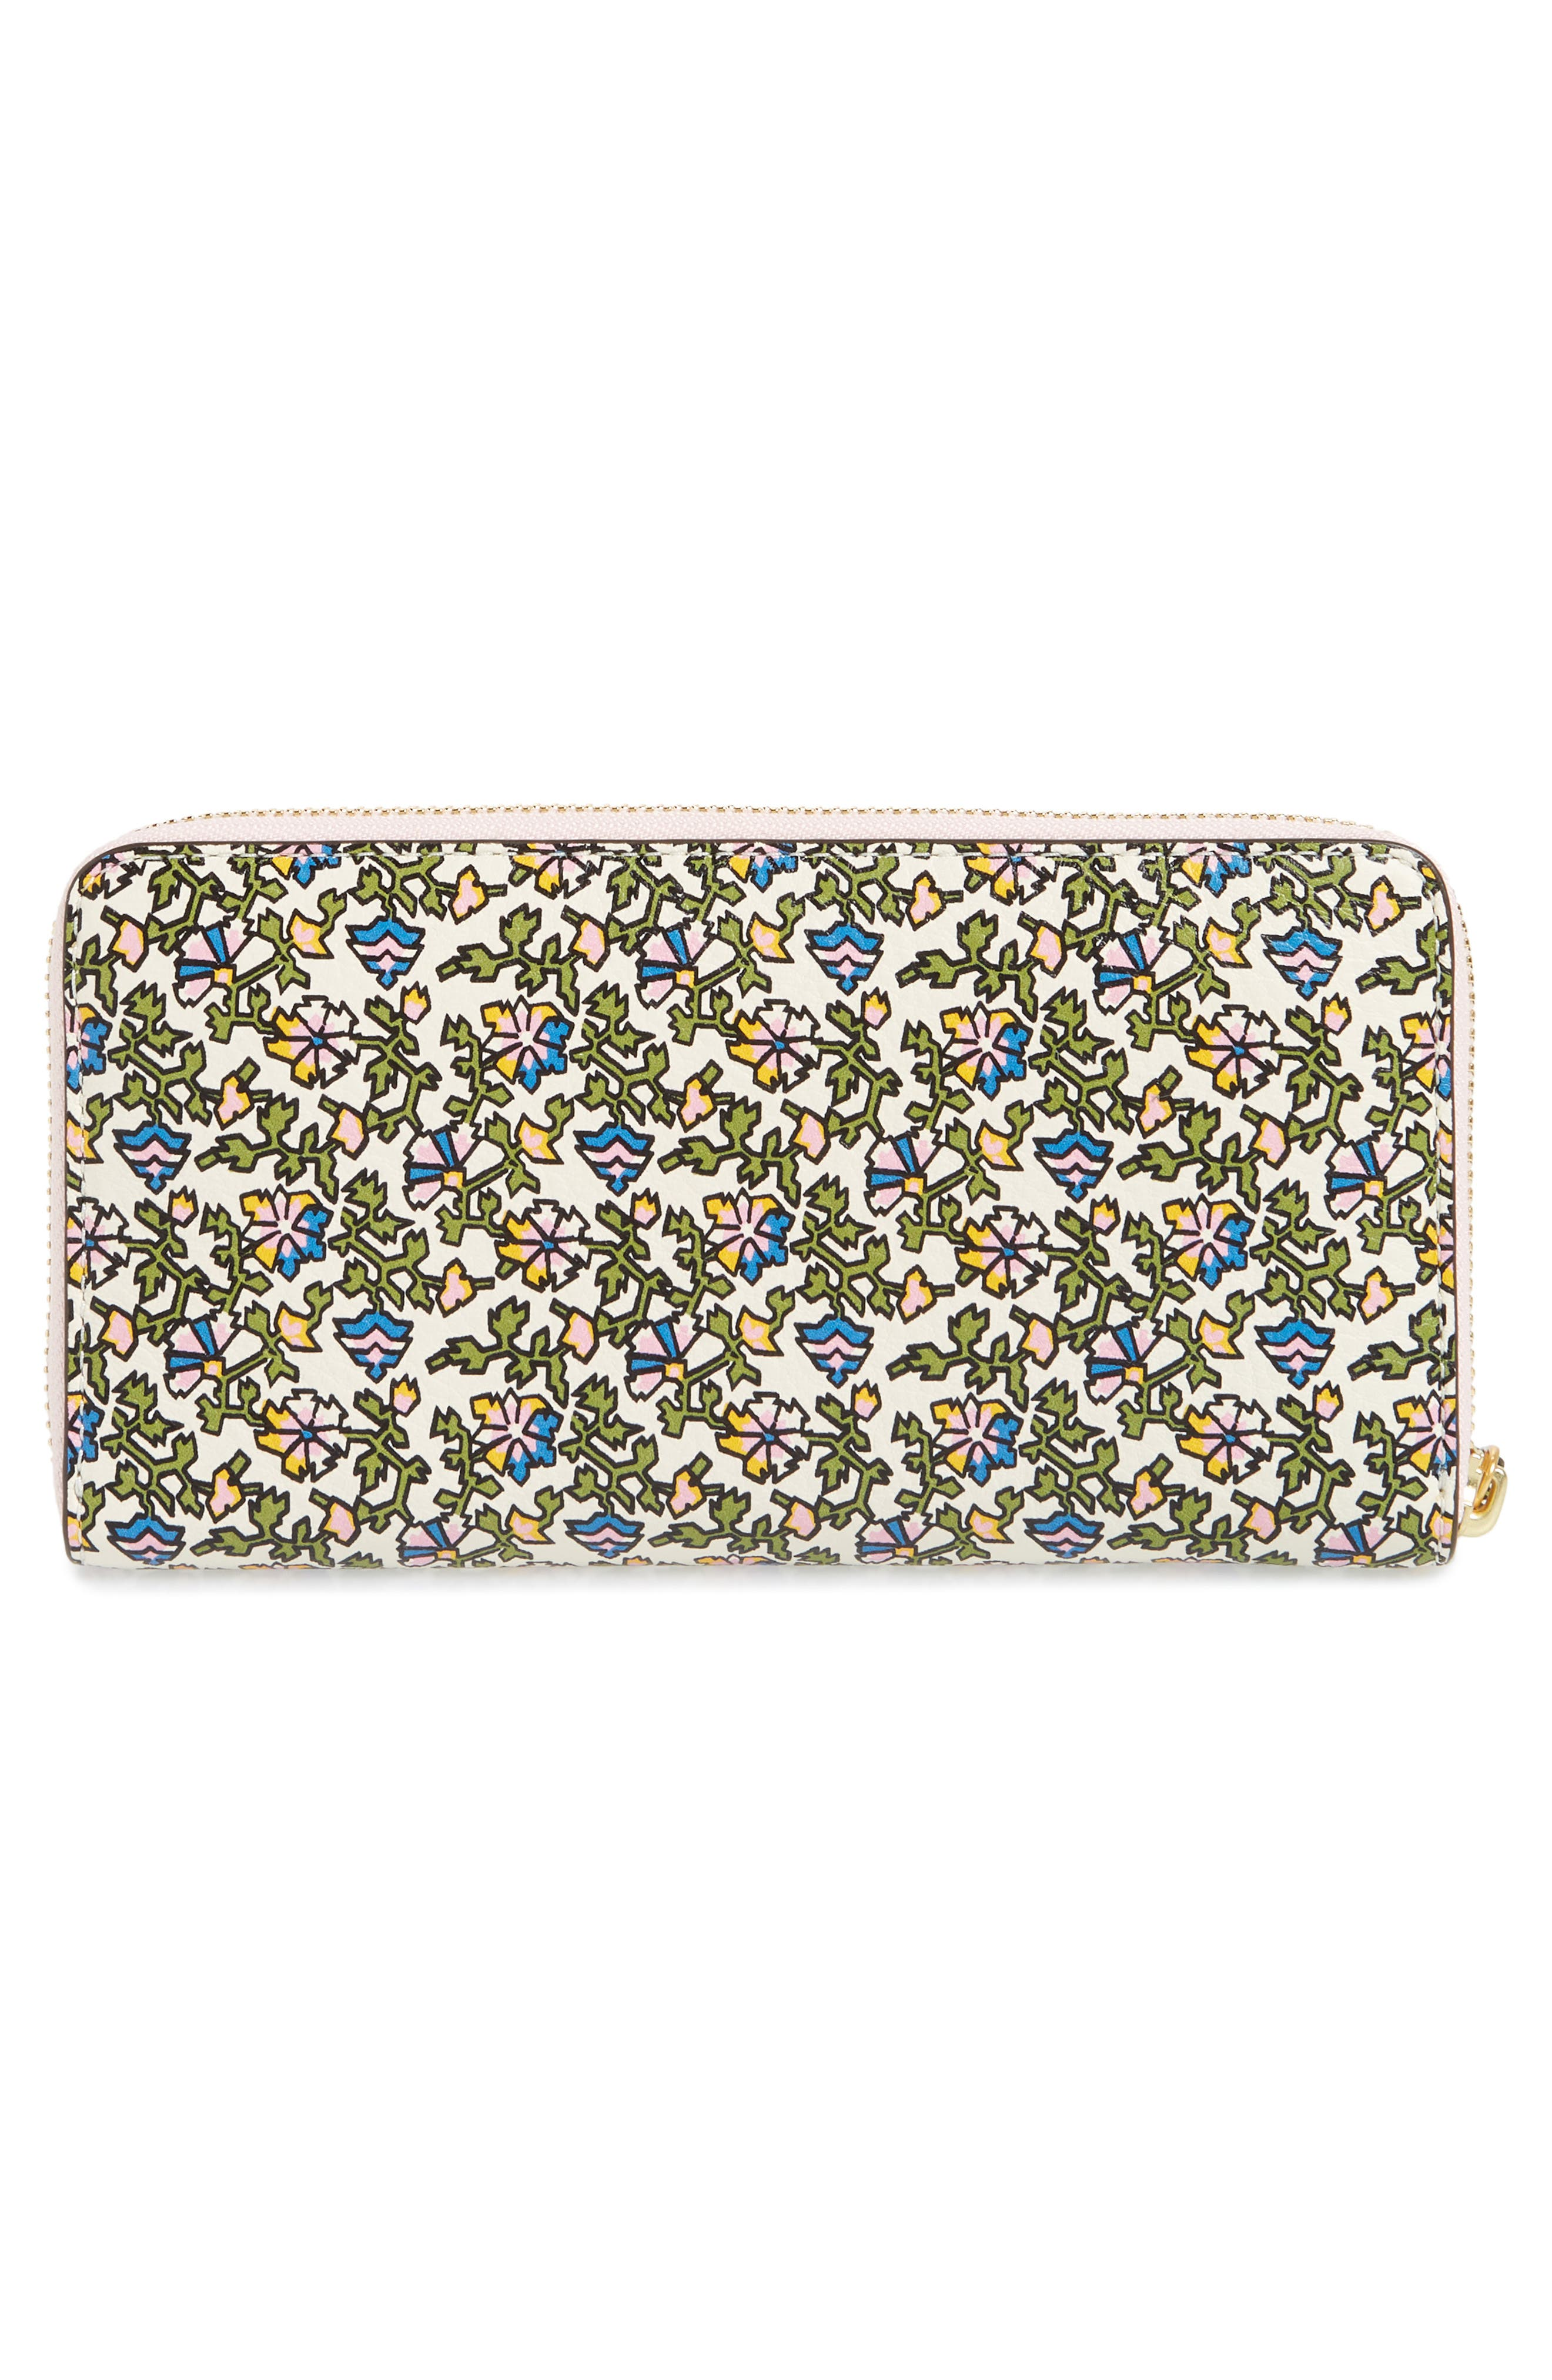 Floral Print Leather Zip Around Wallet,                             Alternate thumbnail 4, color,                             100